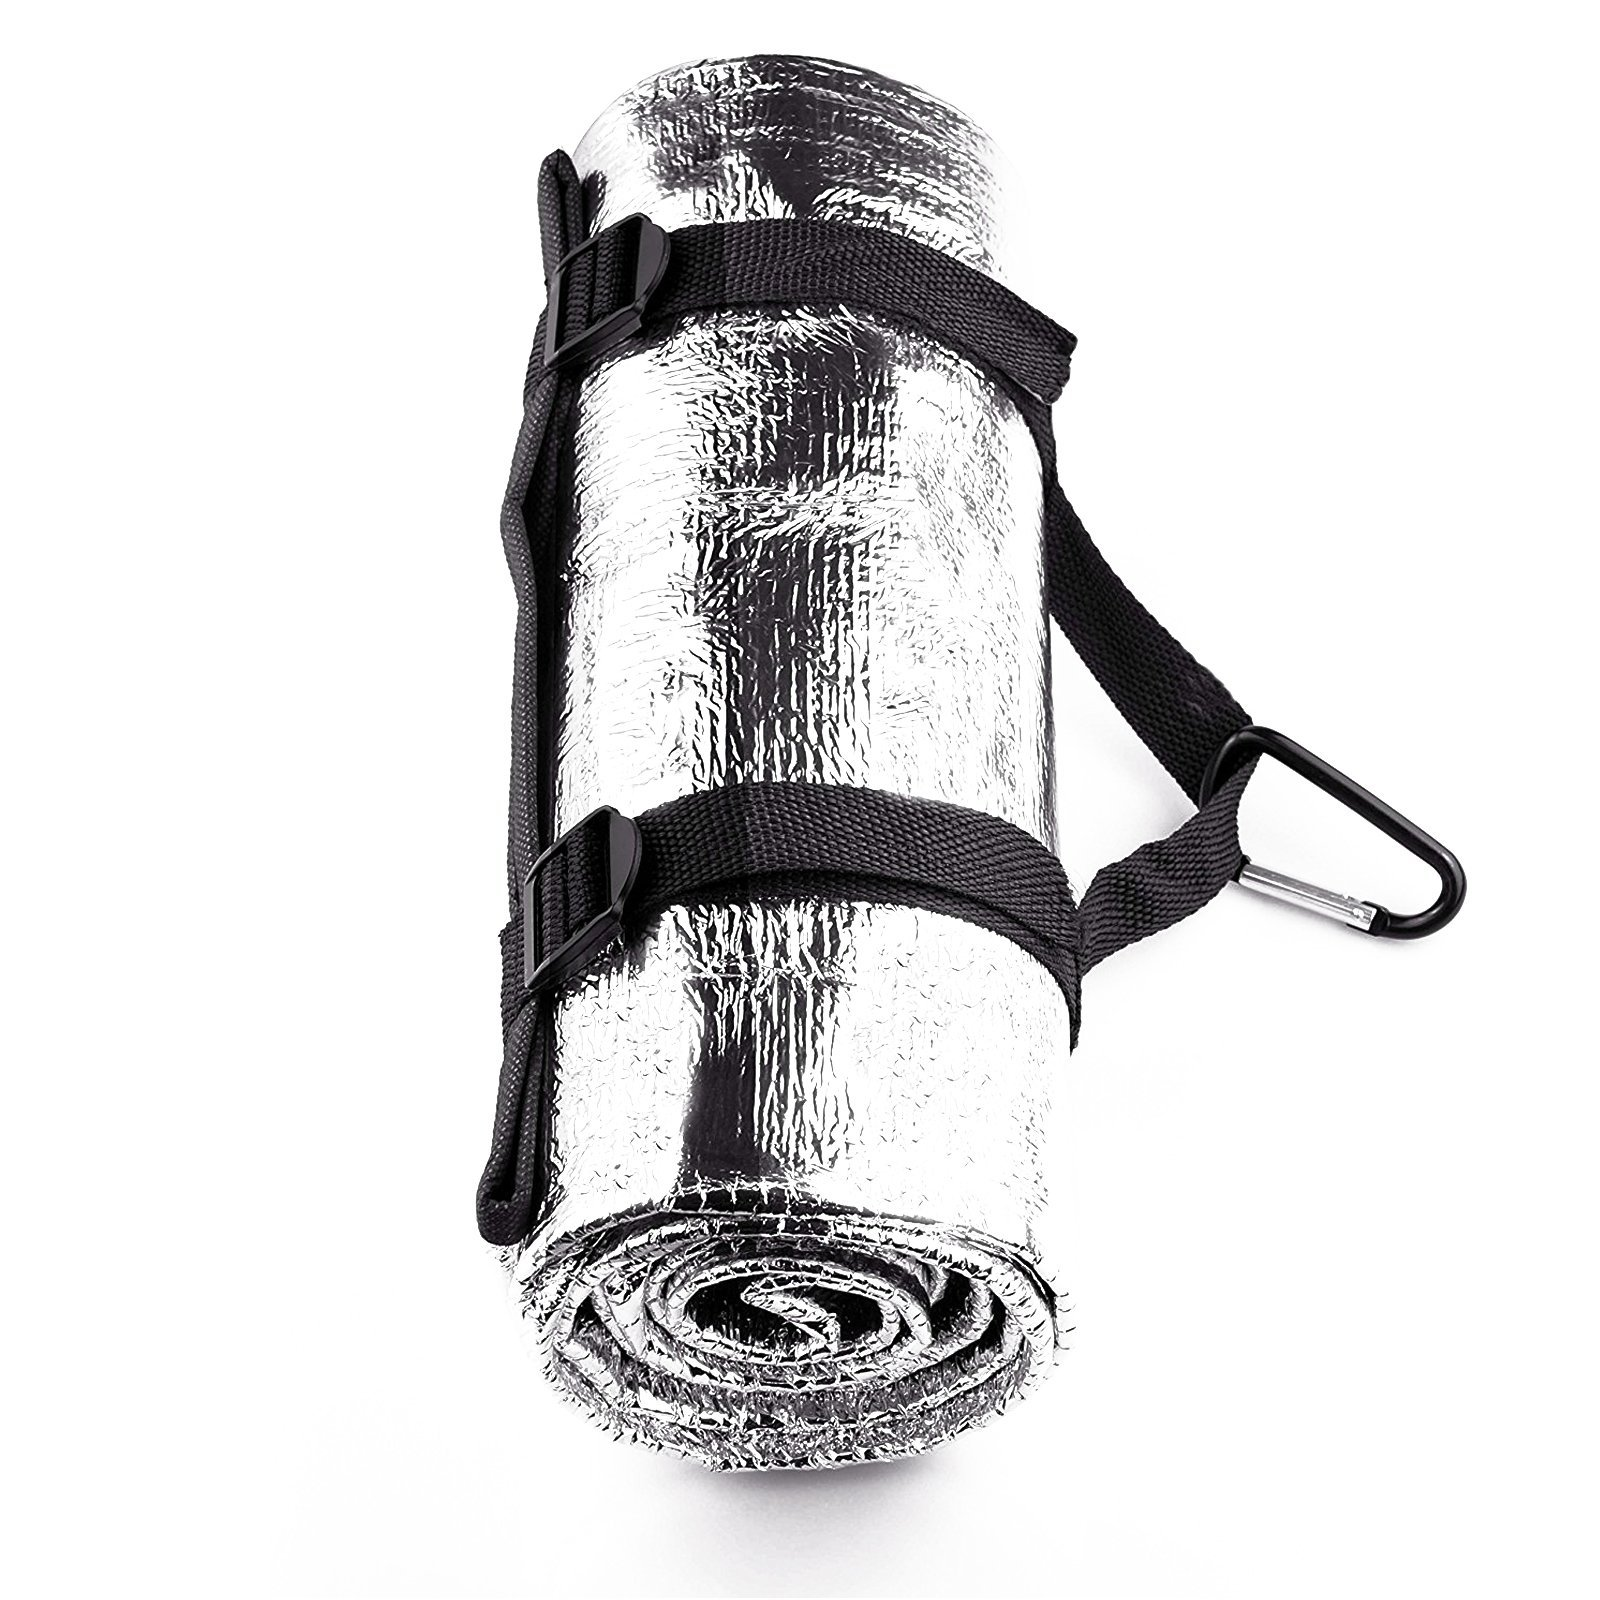 ASR Outdoor Emergency Camping Double Sided Thermal Reflective Blanket 23 x 69 IN